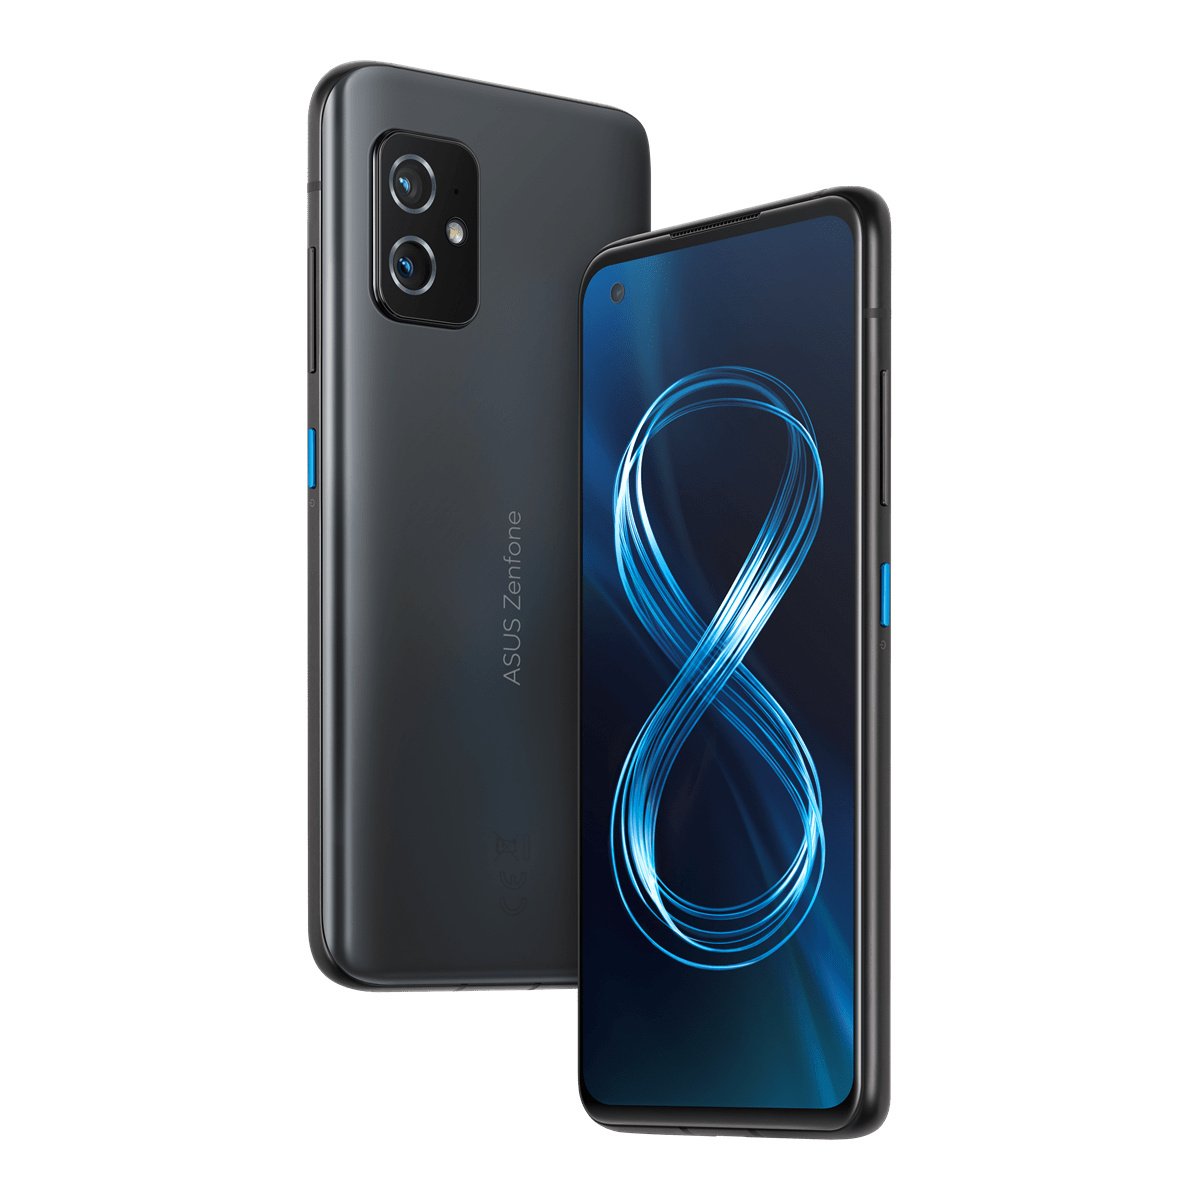 Obsidian-Black-ZenFone-8-with-blue-accent-on-power-button-and-8-on-display-09134257